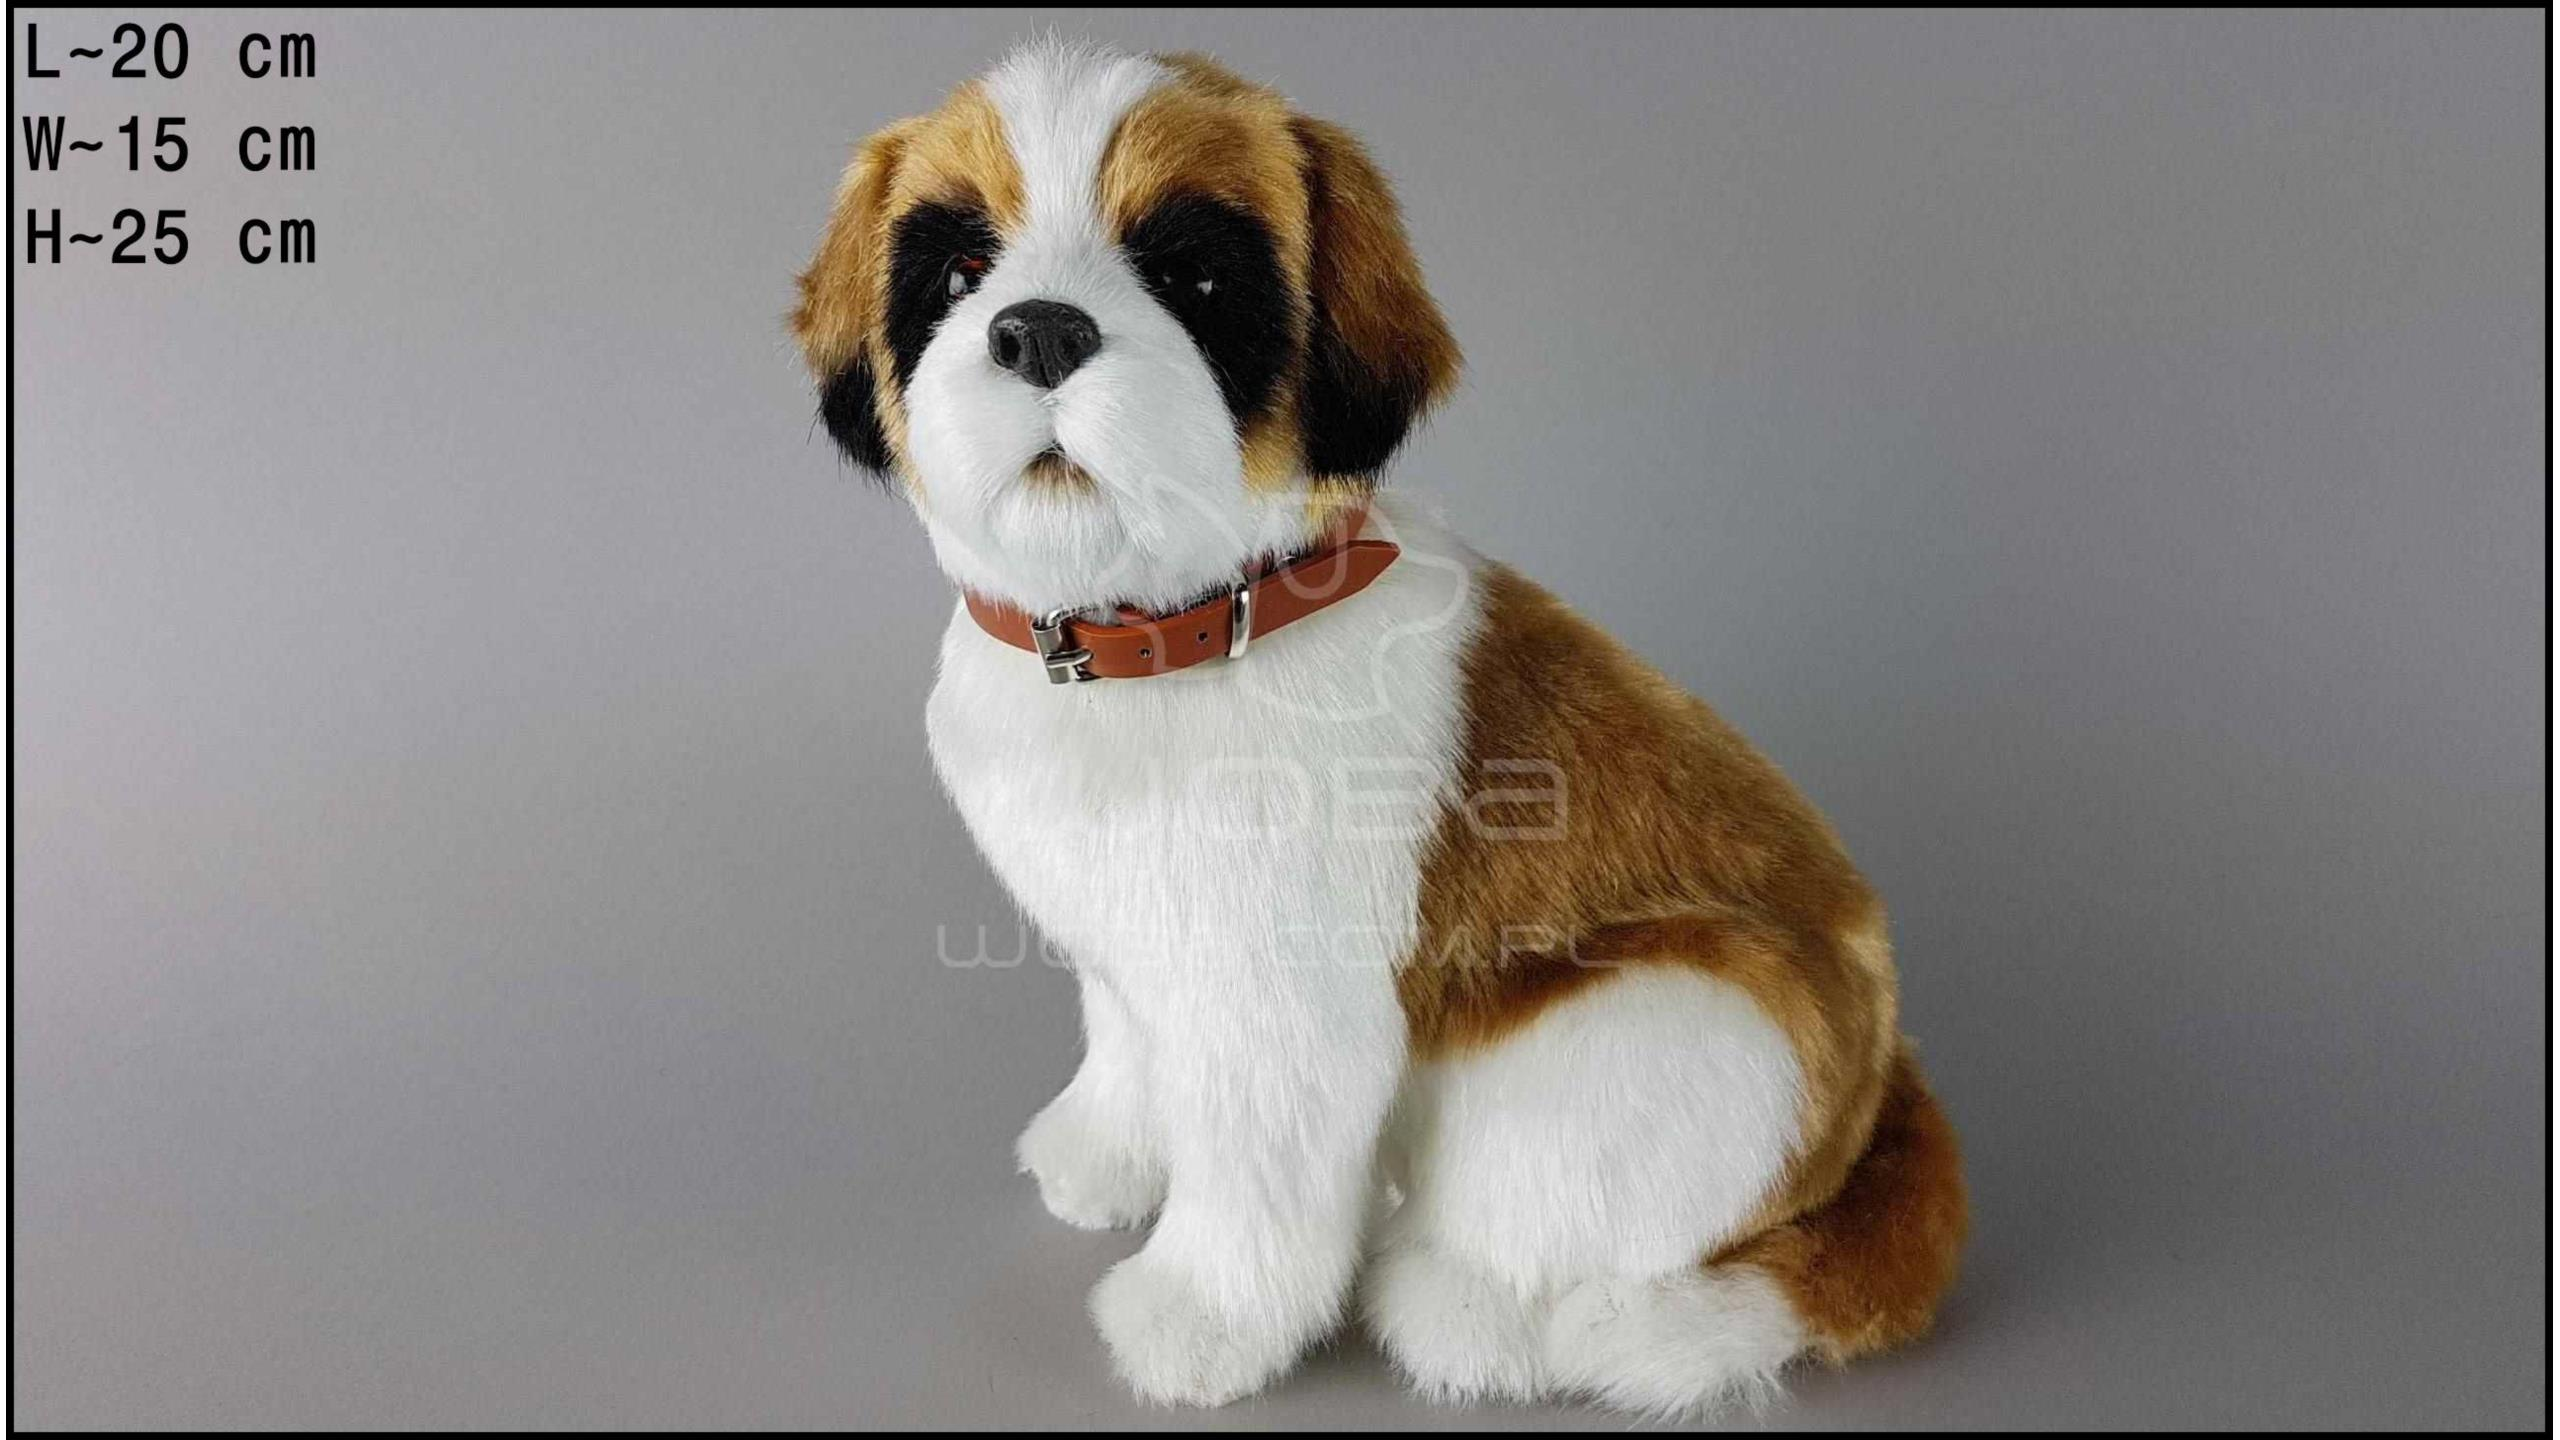 Large dog - St. Bernard